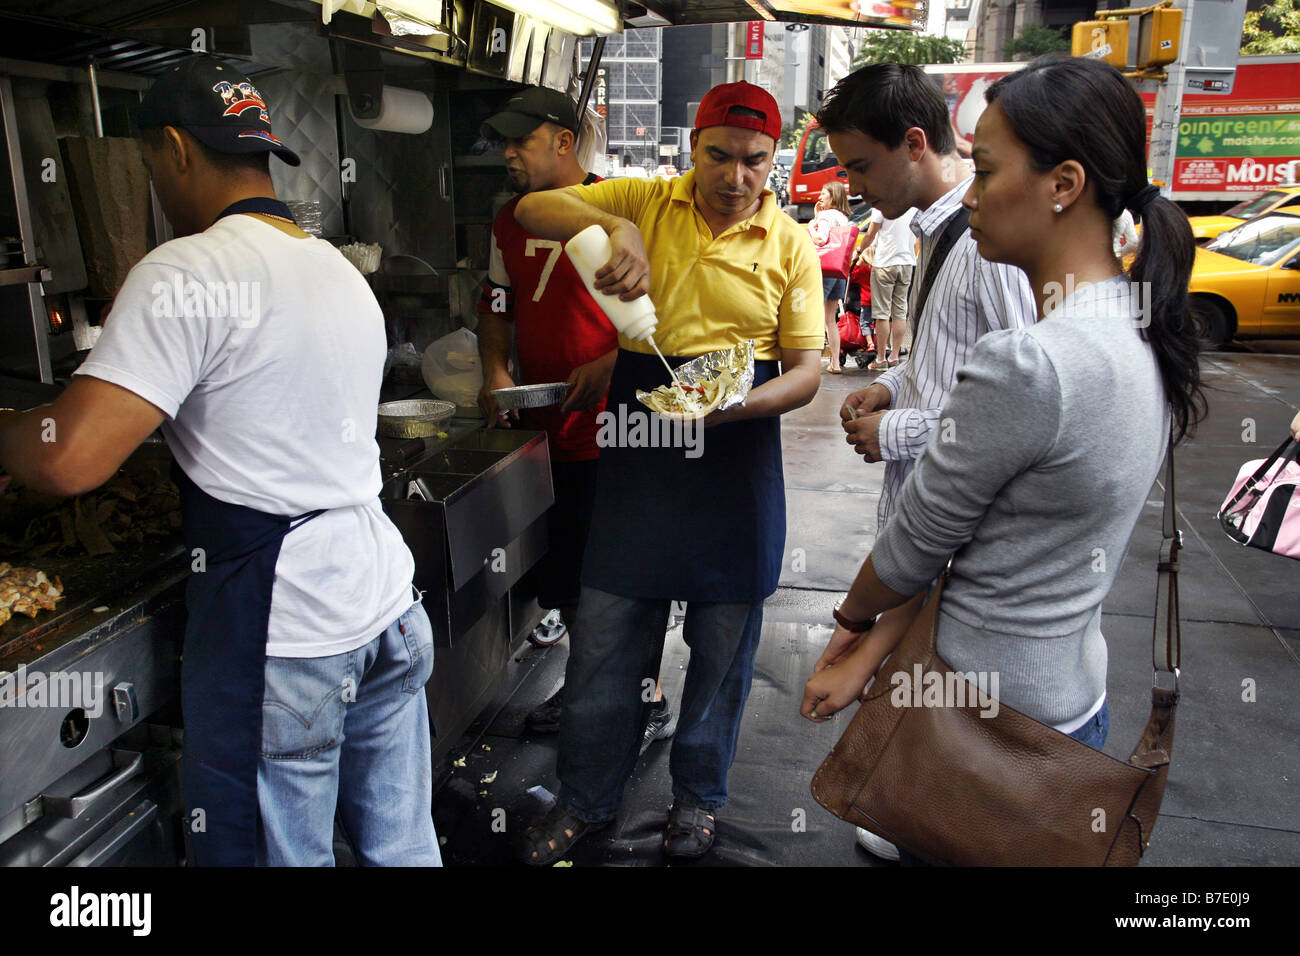 Kebab Stand & Street Vendor, New York City, USA - Stock Image